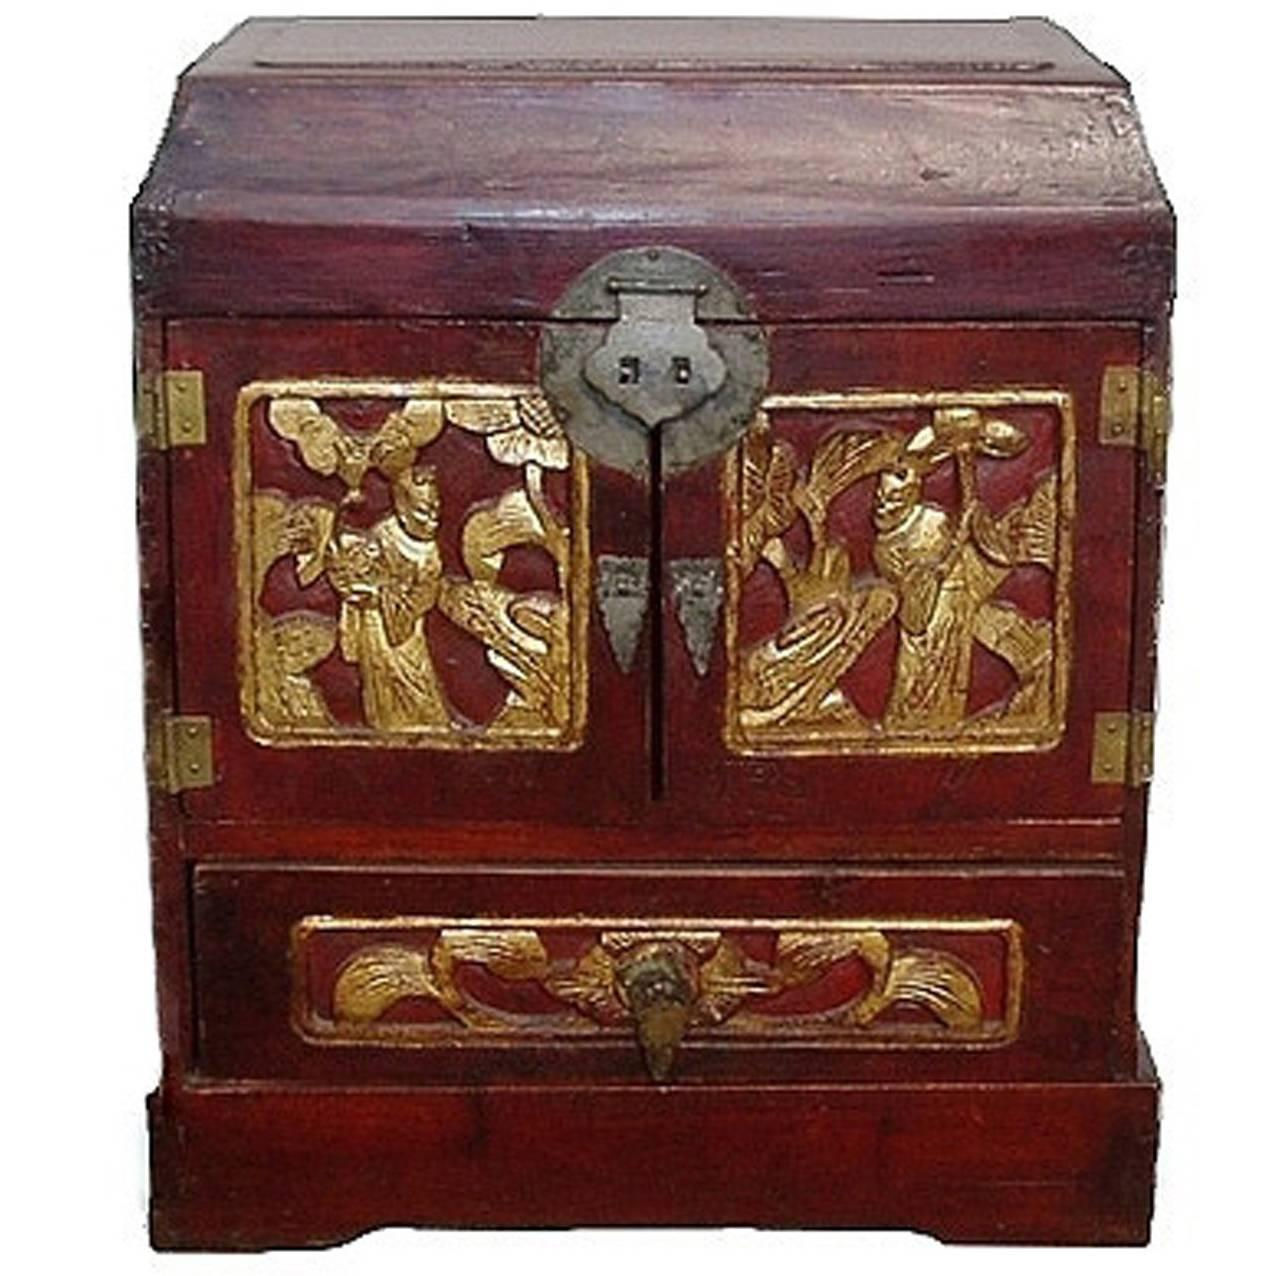 Antique Chinese Jewelry Box with Four Drawers and Gilded Figures